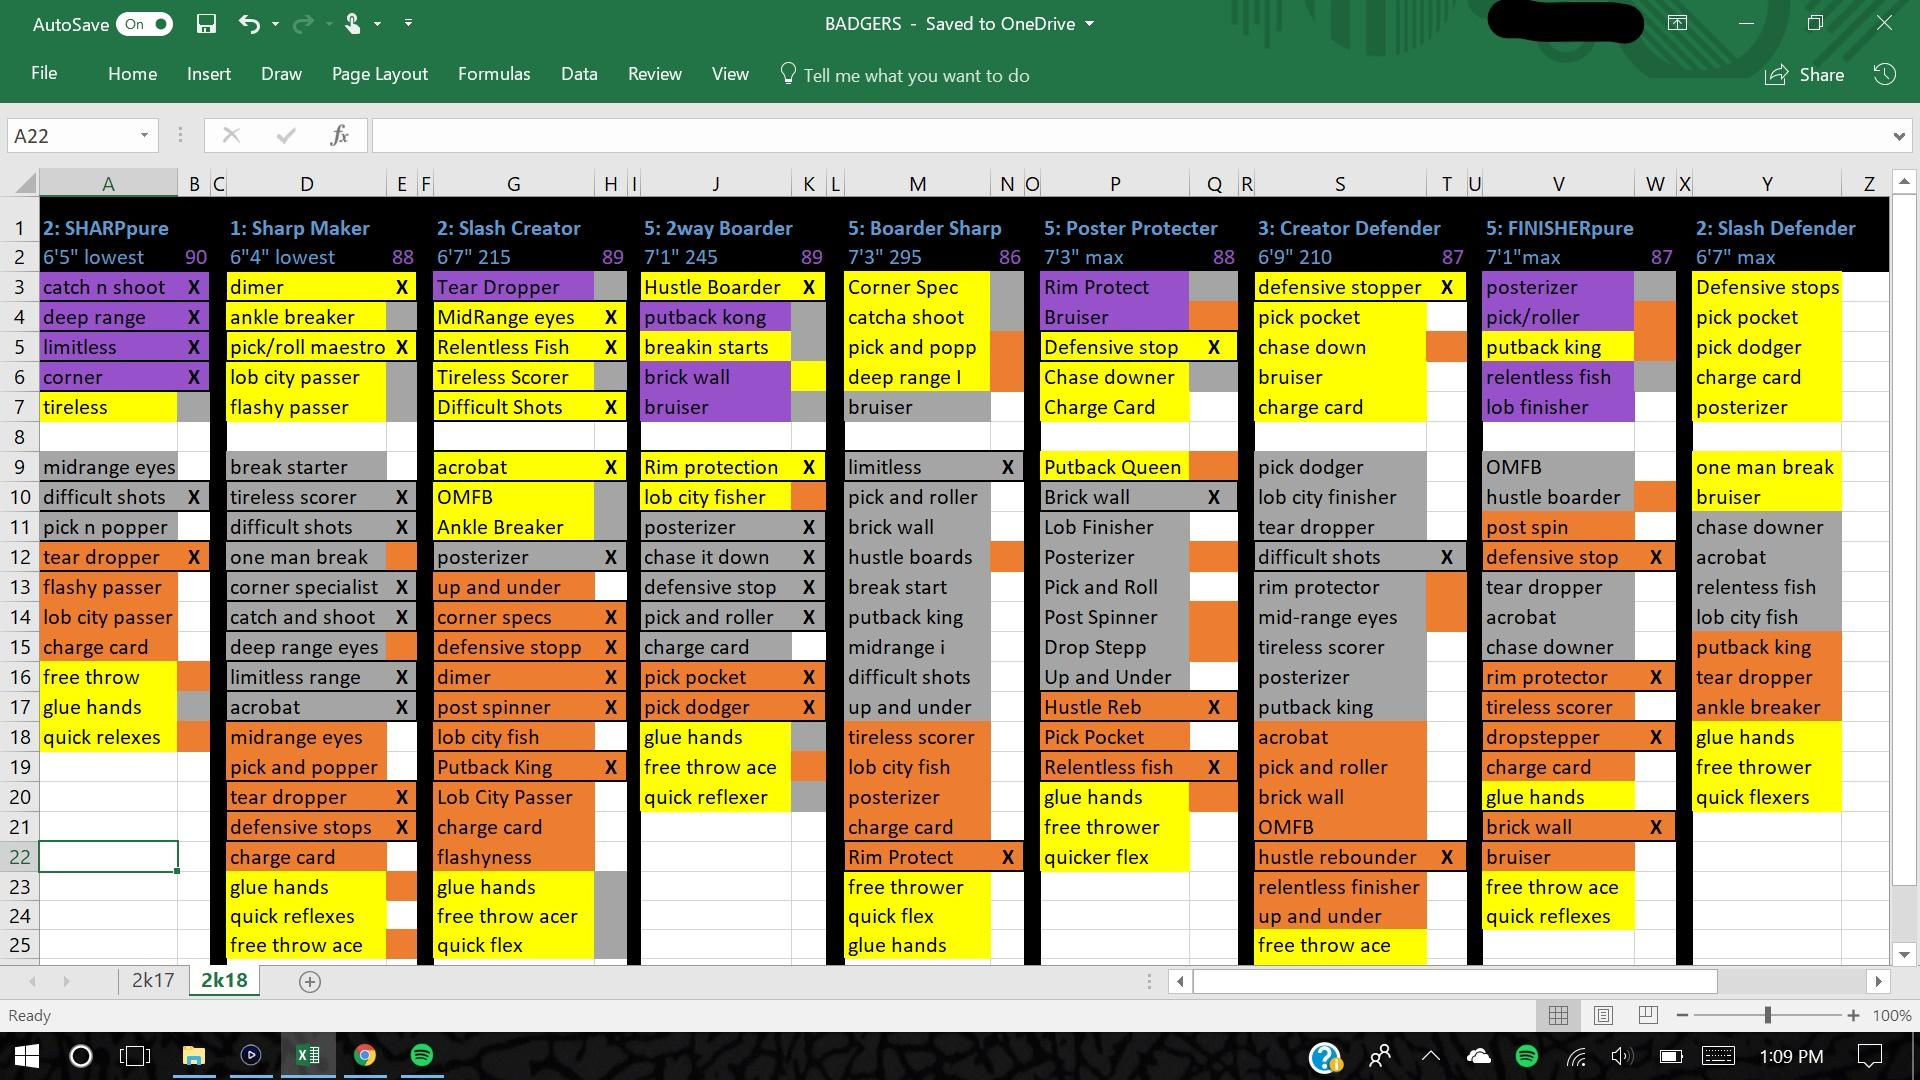 Nba 2K19 Badges Spreadsheet Pertaining To Ocd Spreadsheet I Made To Keep Track Of My Badges/players : Nba2K